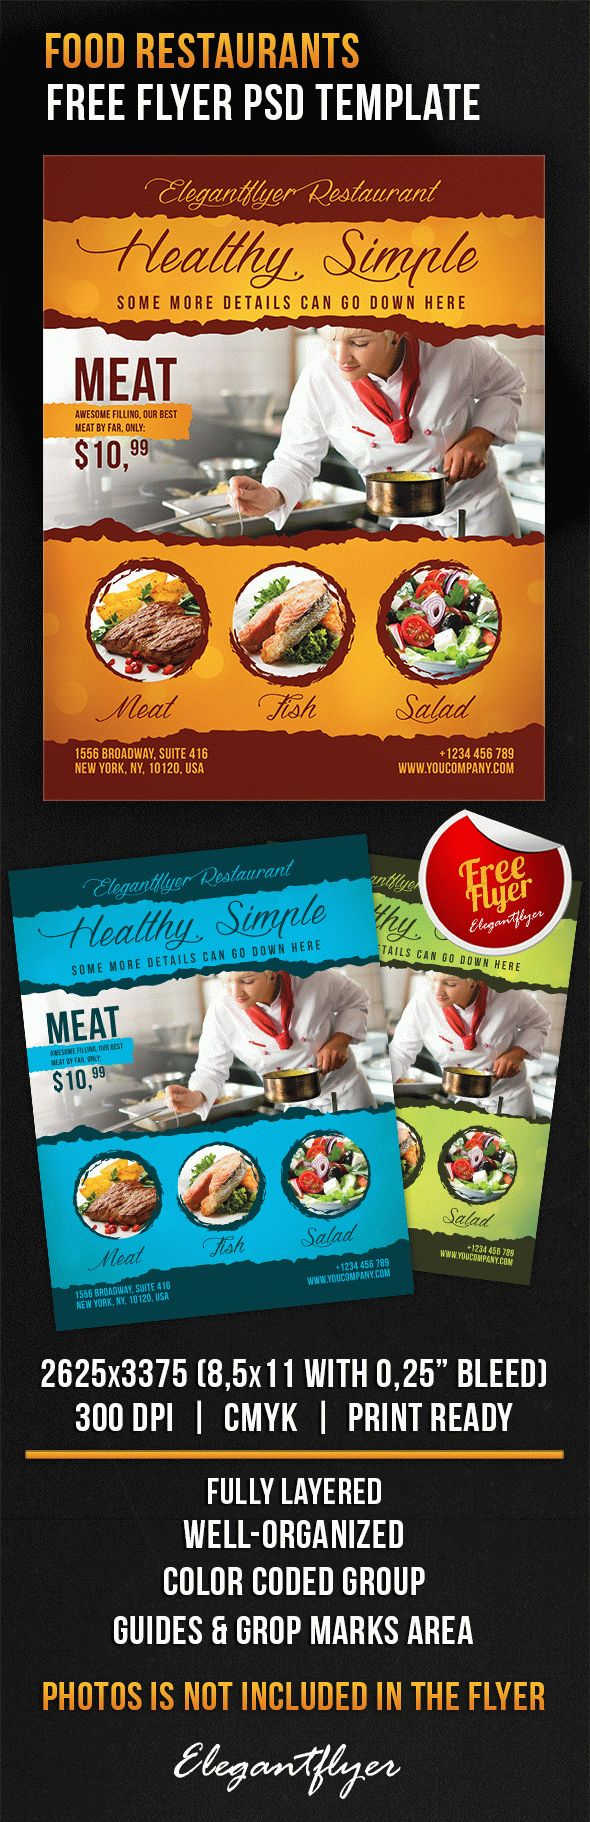 Food Restaurants Free Flyer Psd Template By Elegantflyer